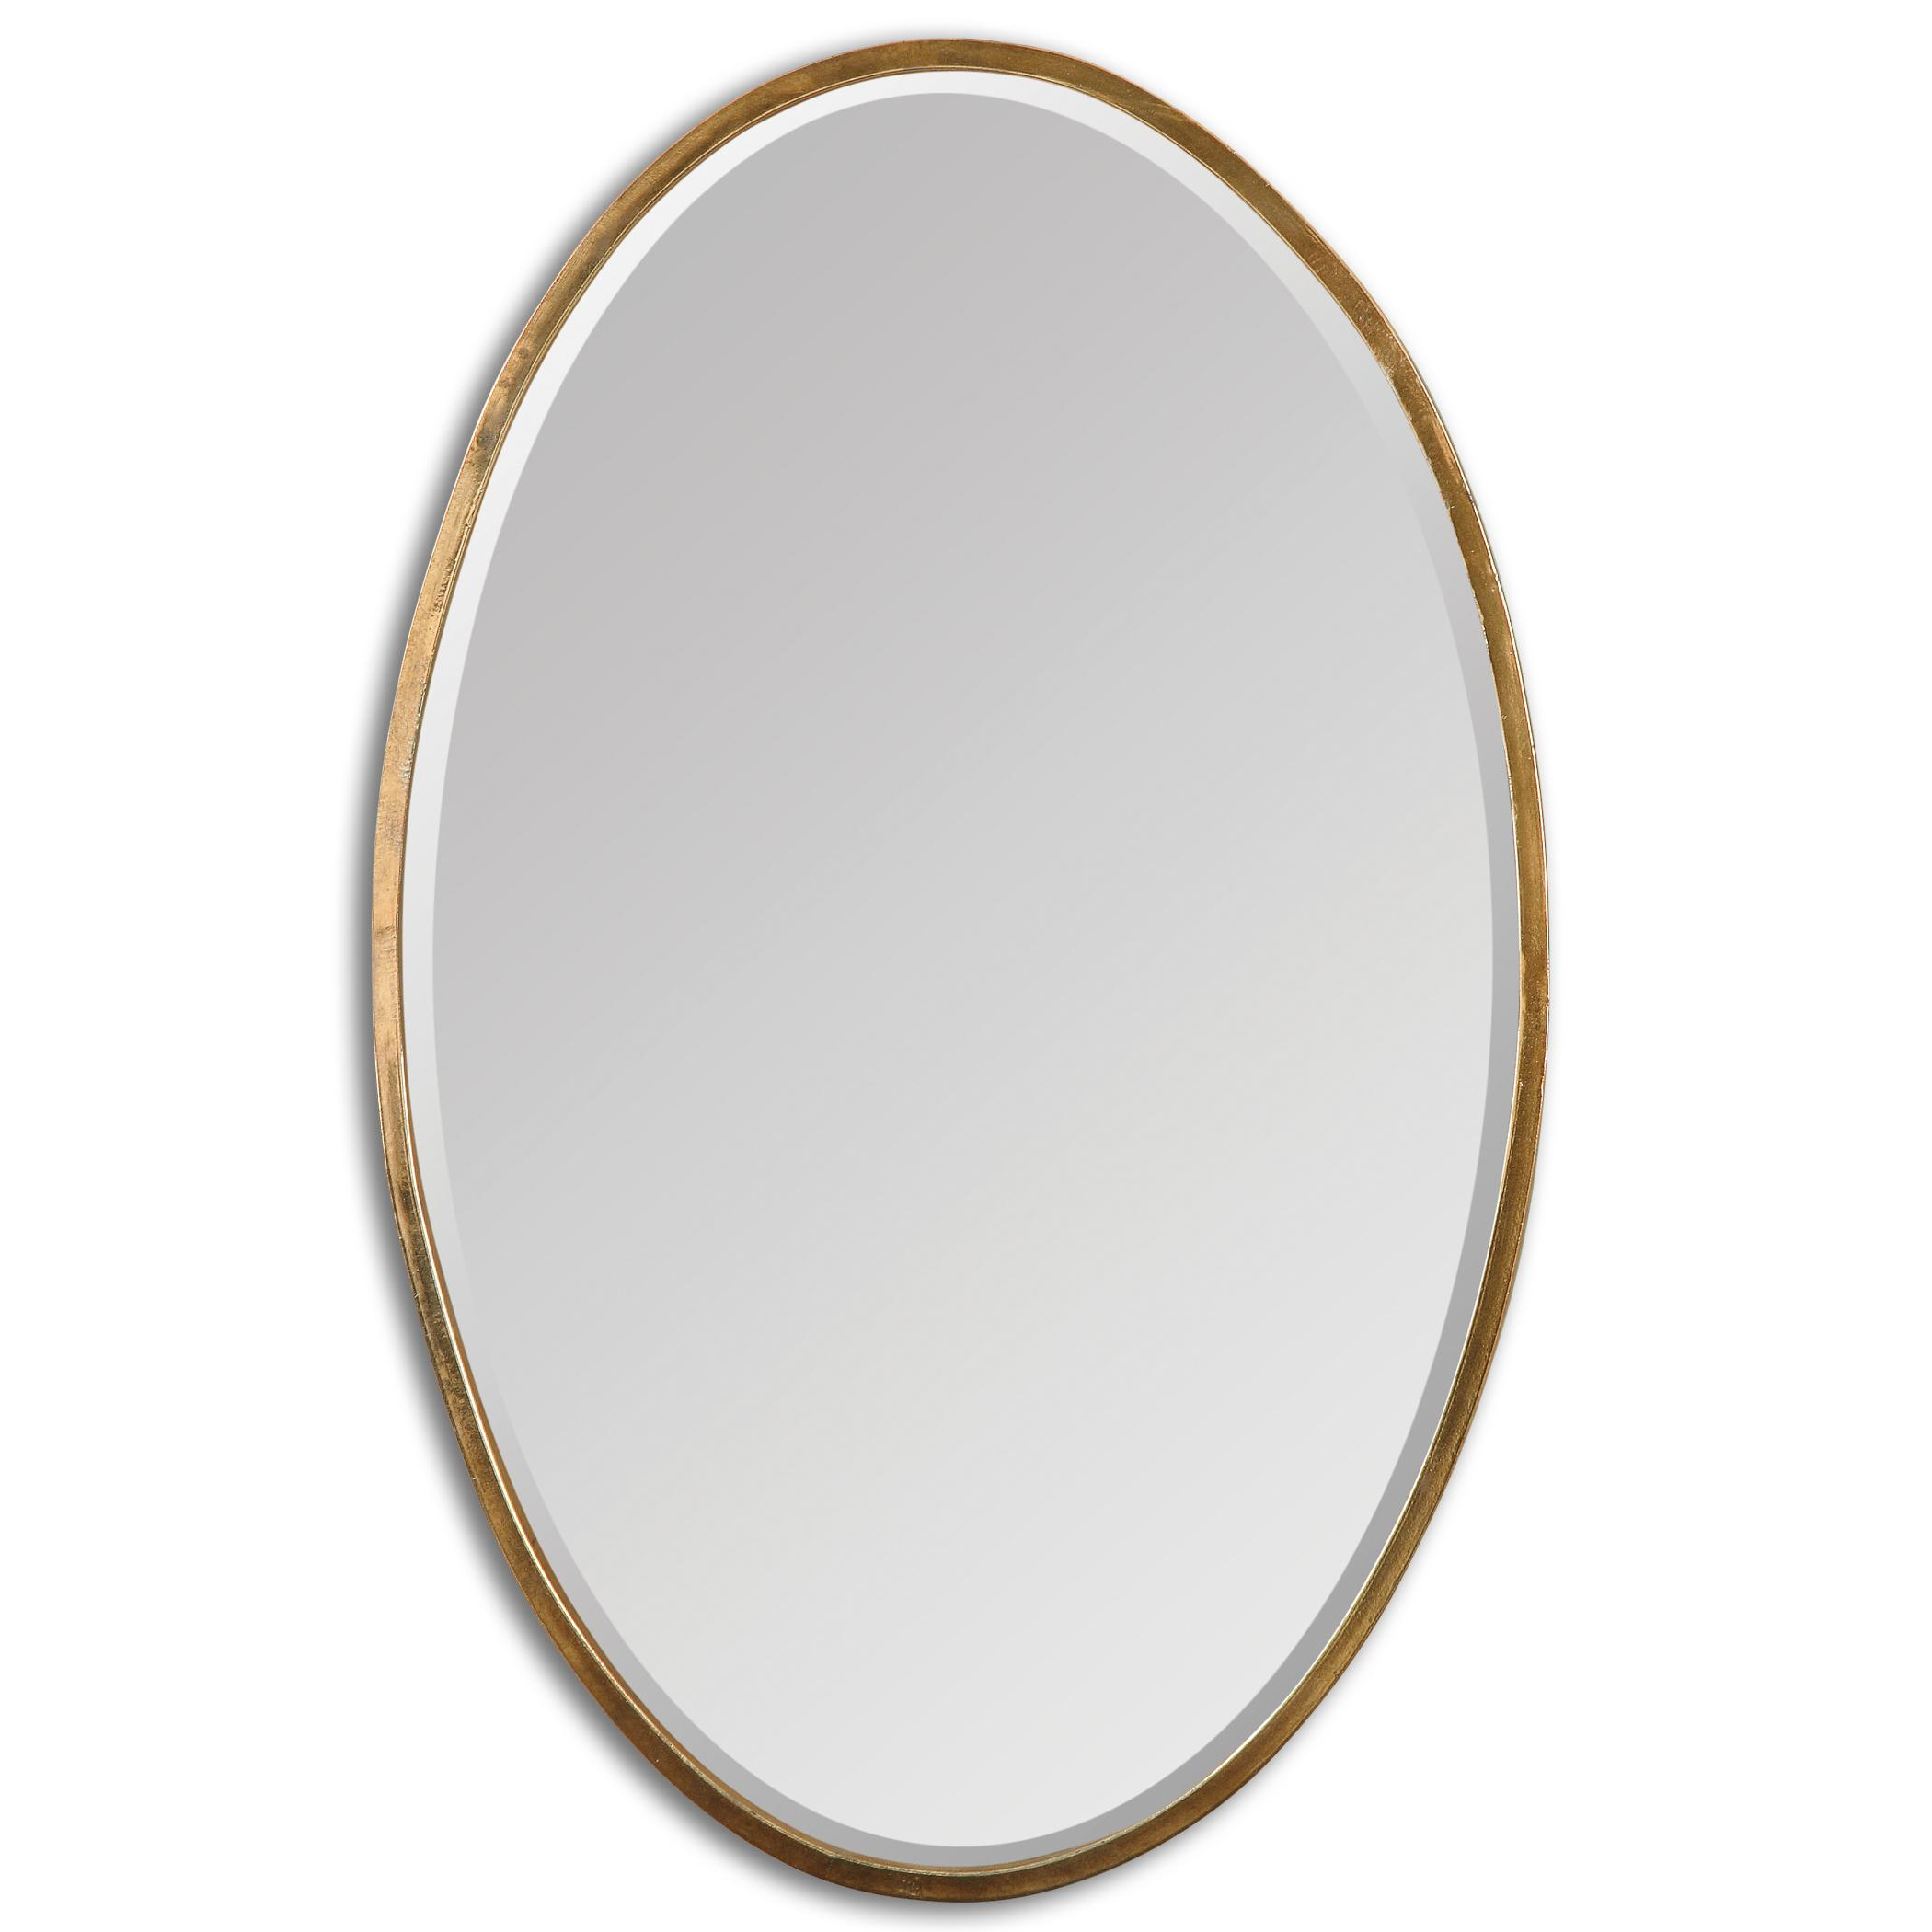 Uttermost Mirrors Herleva Gold Oval Mirror - Item Number: 12894